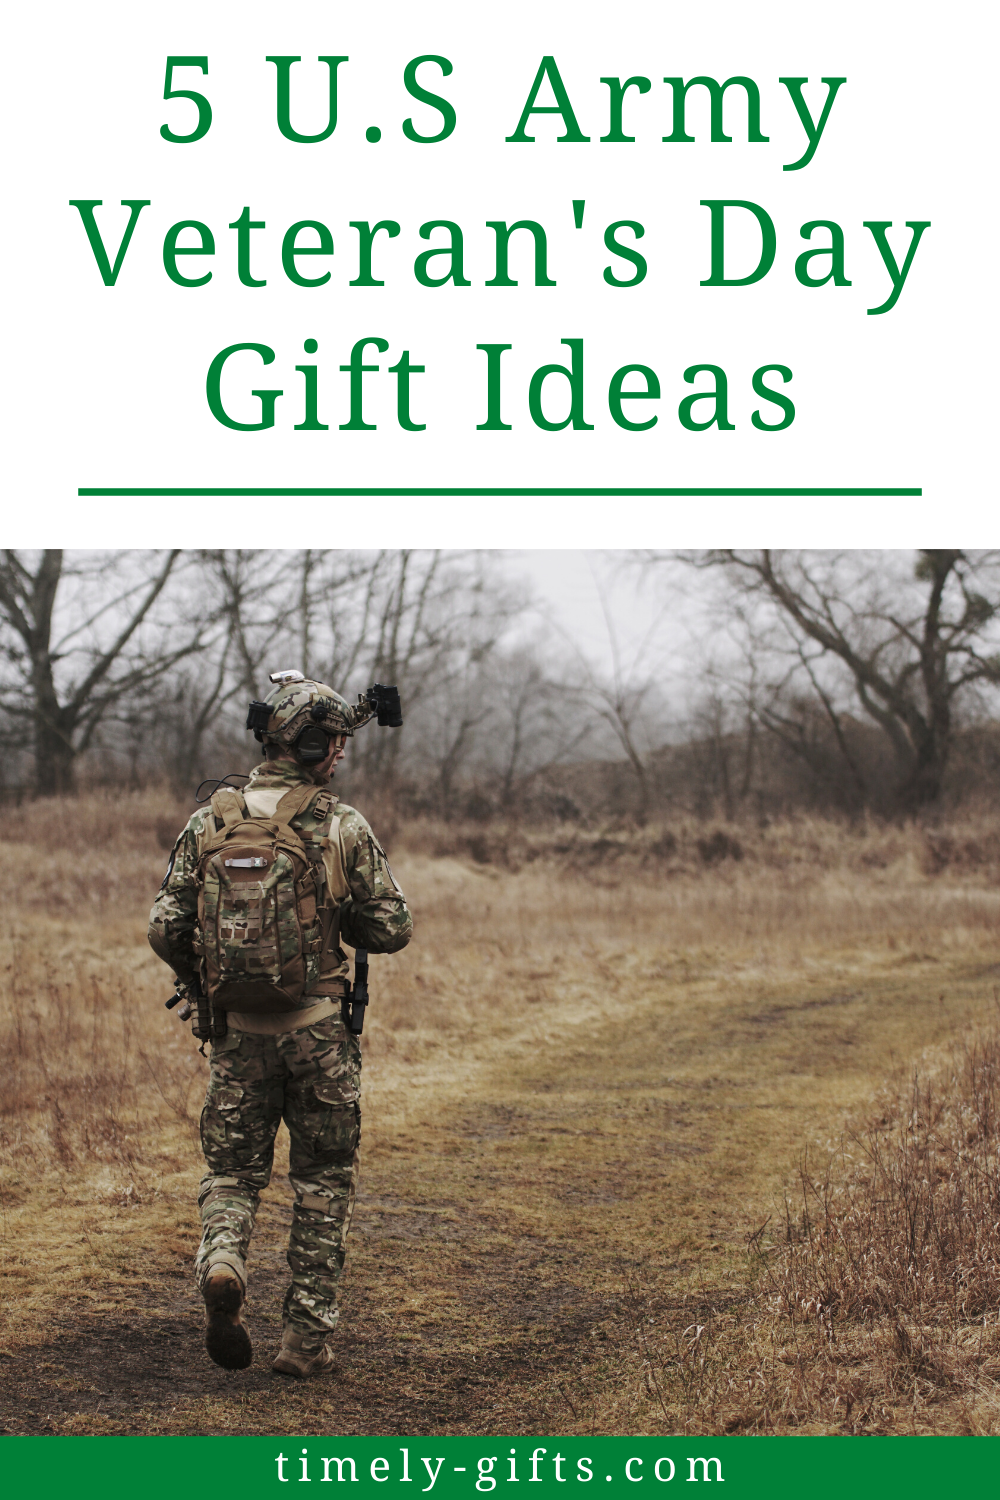 5 U S Army Veteran S Day Gift Ideas In 2020 Veterans Day Gifts Army Veteran Army Veteran Gift